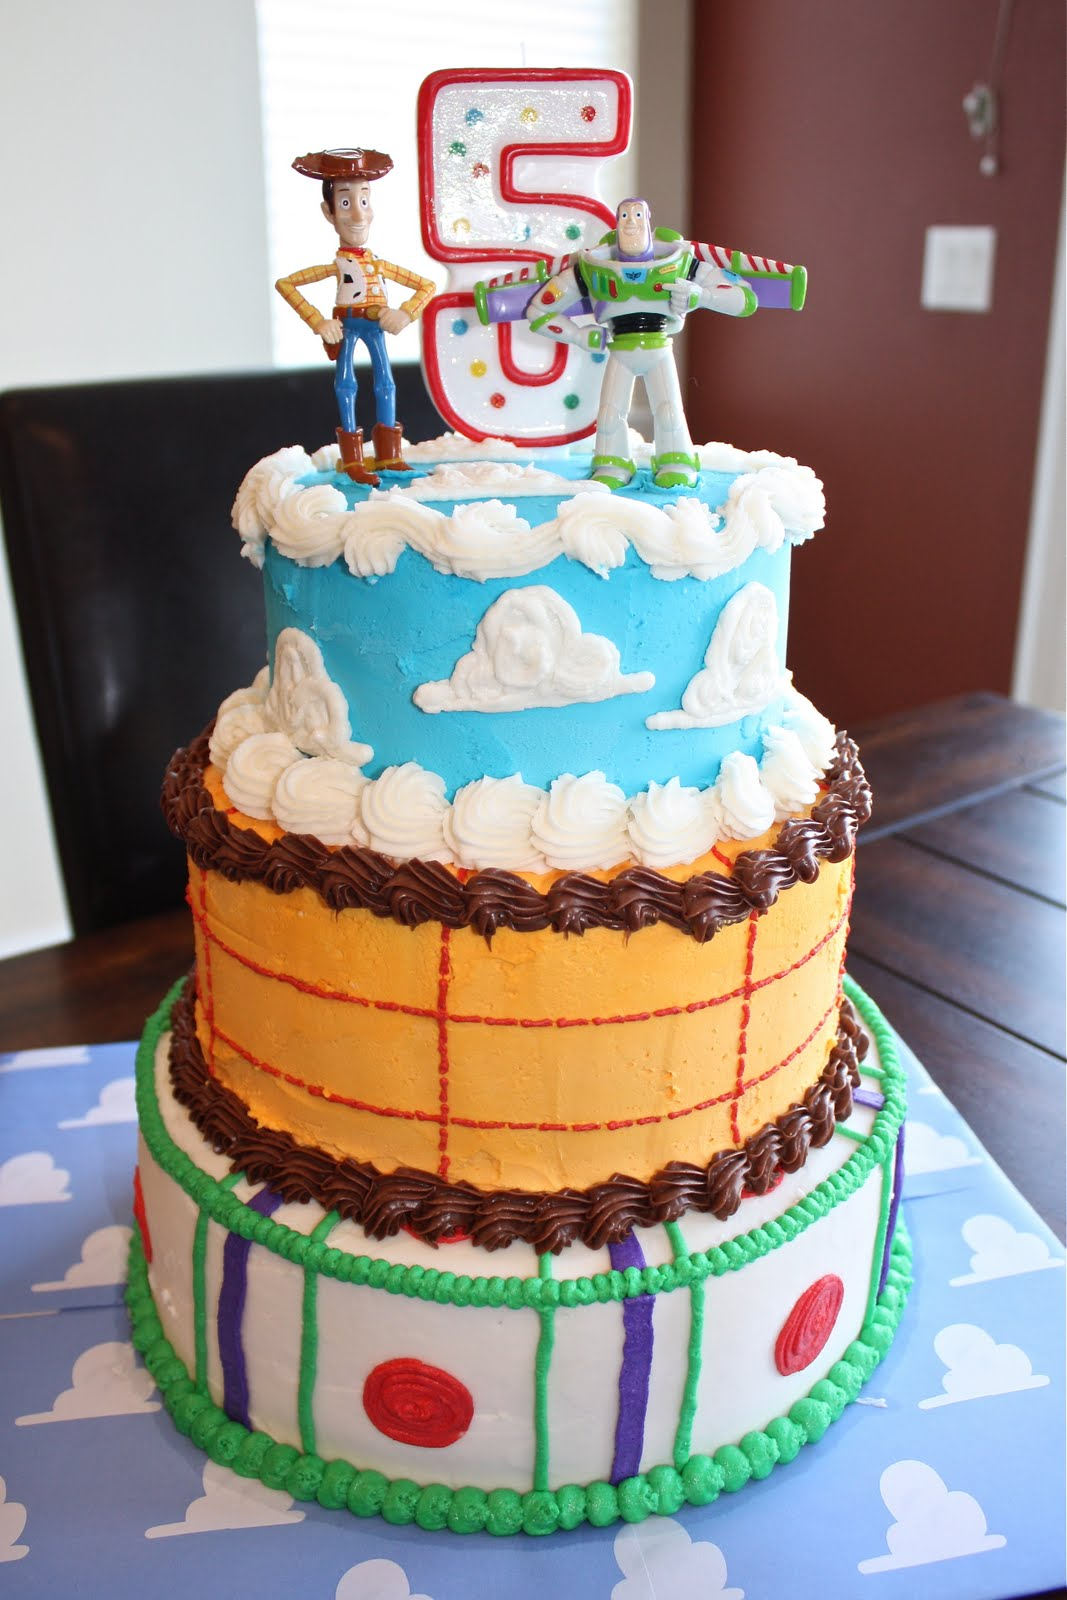 Birthday Cake Toy : Little things toy story mania cake